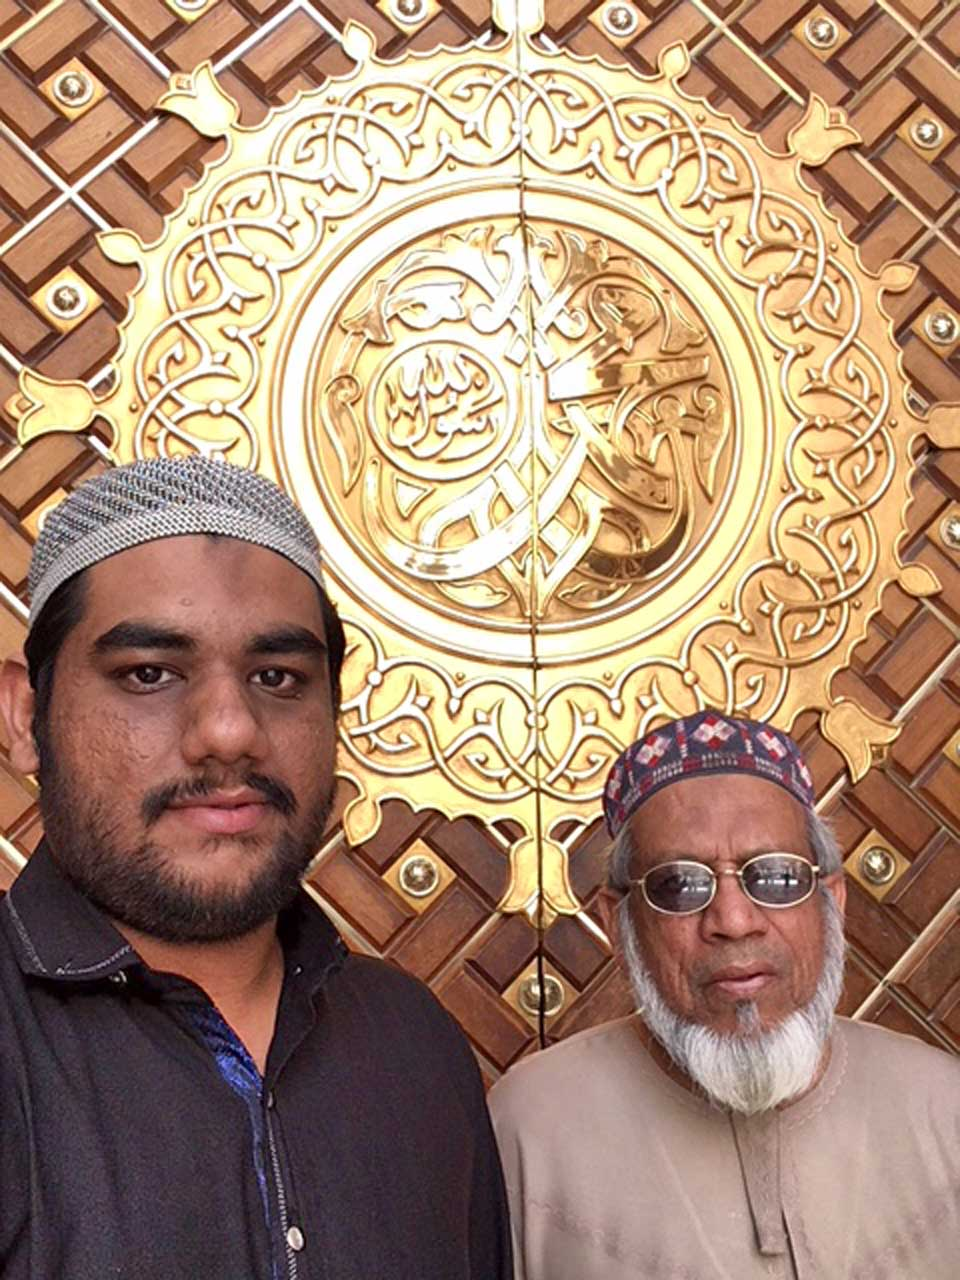 Engr. Taha Ahmed Khan and Engr. Iqbal Ahmed Khan at the entry gate of Masjid-e-Nabwi, 2018